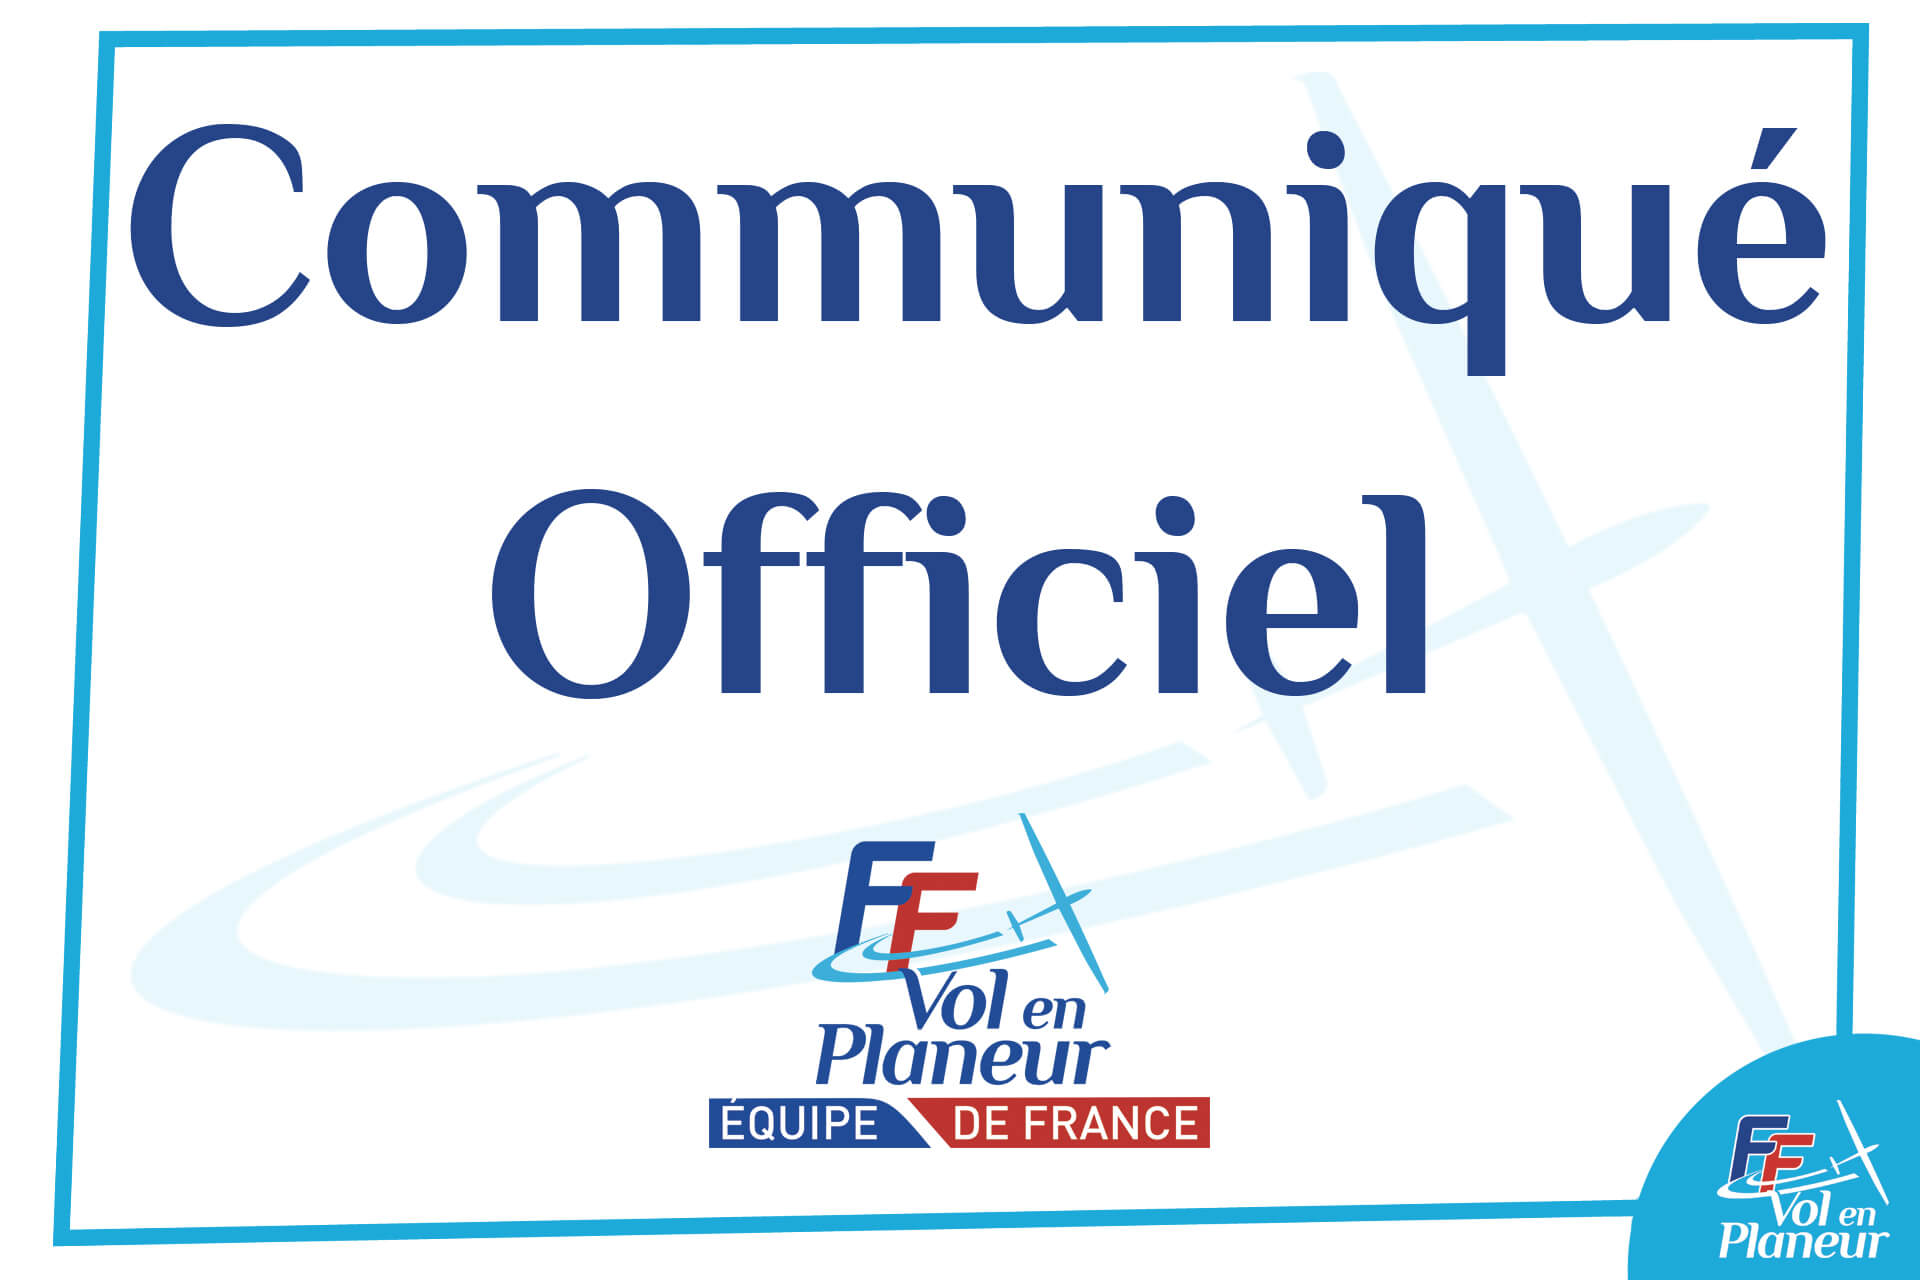 Communiqué officiel Pole France